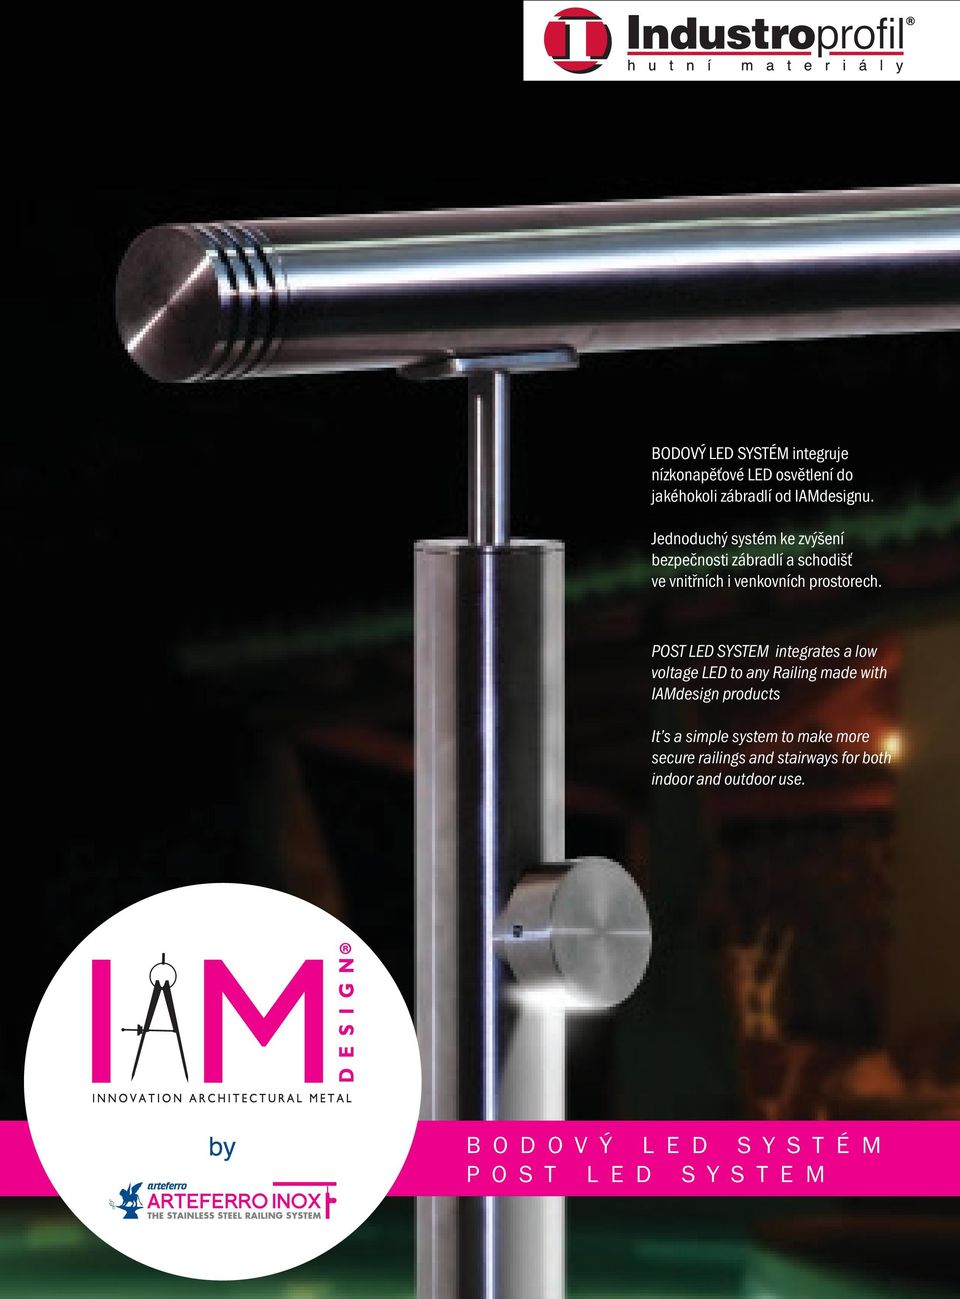 POST ED SYSTEM integrates a low voltage ED to any Railing made with IAMdesign products It s a simple